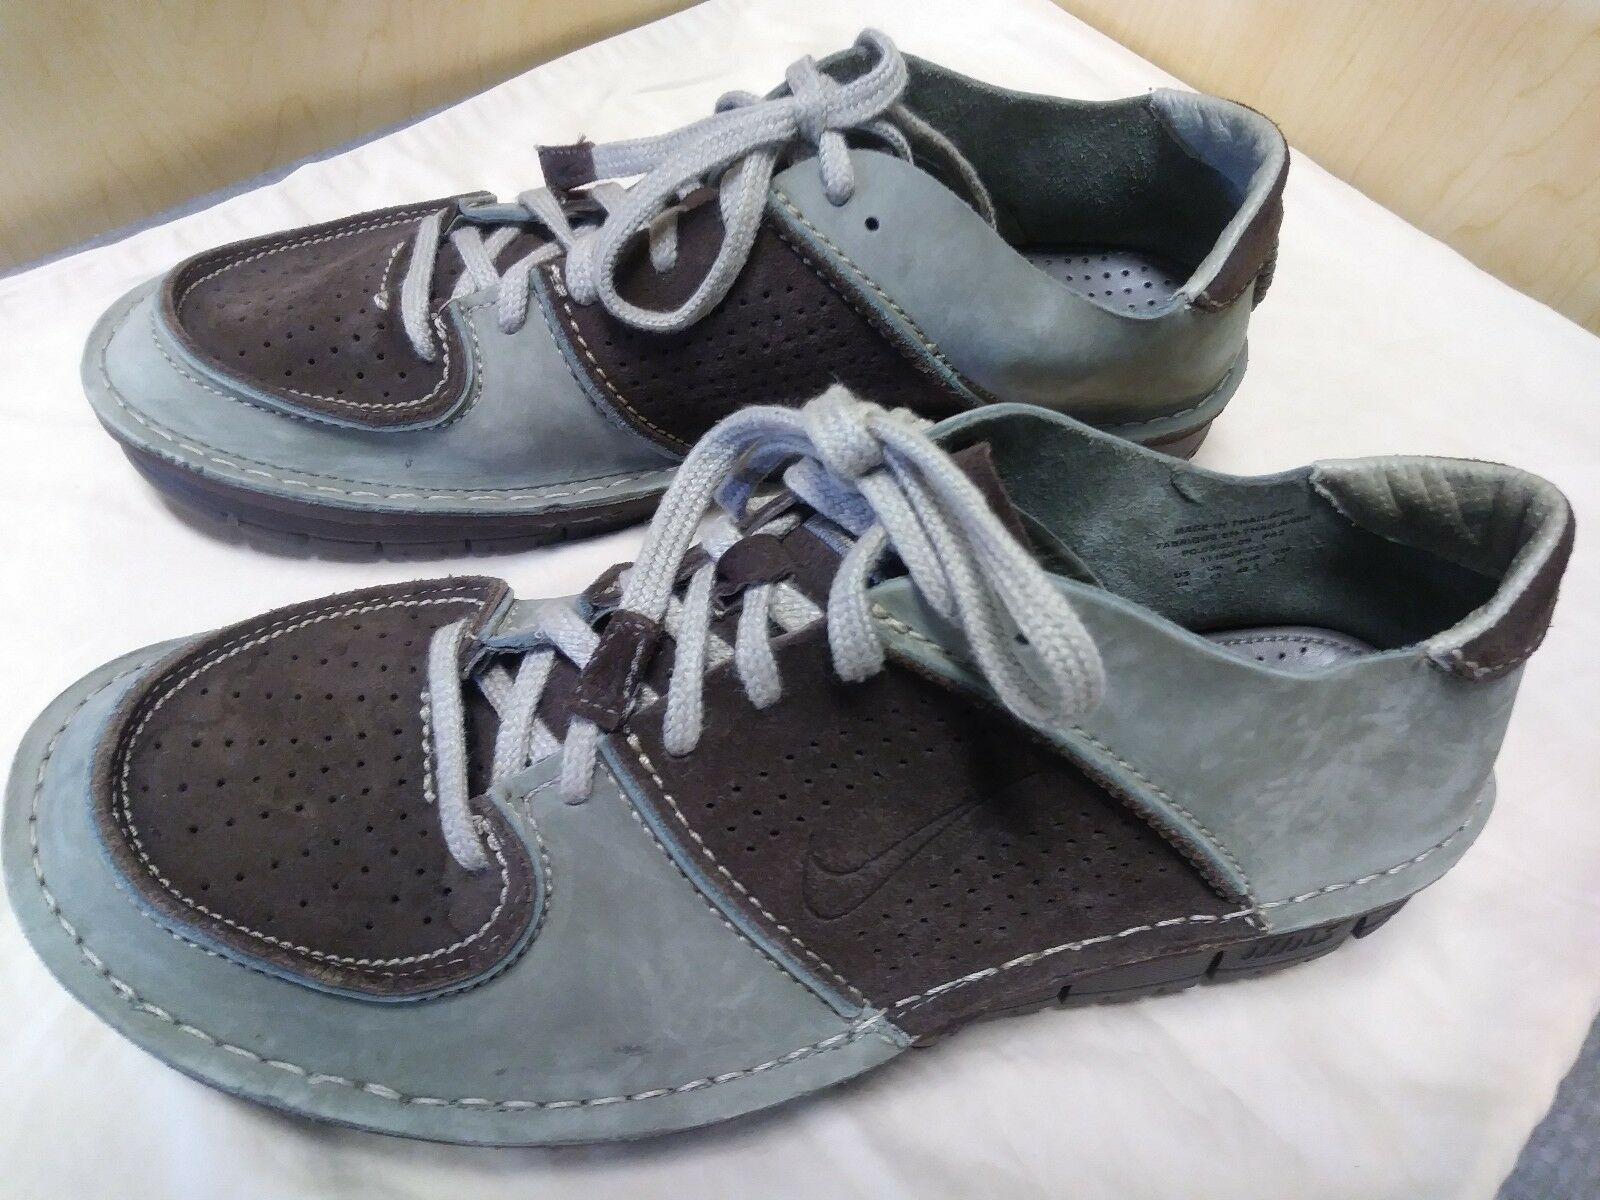 NIKE NIKE NIKE CONSIDERED SNEAKER COLOR  BROWN SUEDE & OLIVE NUBUCK 311009 SIZE  14 US d46b50